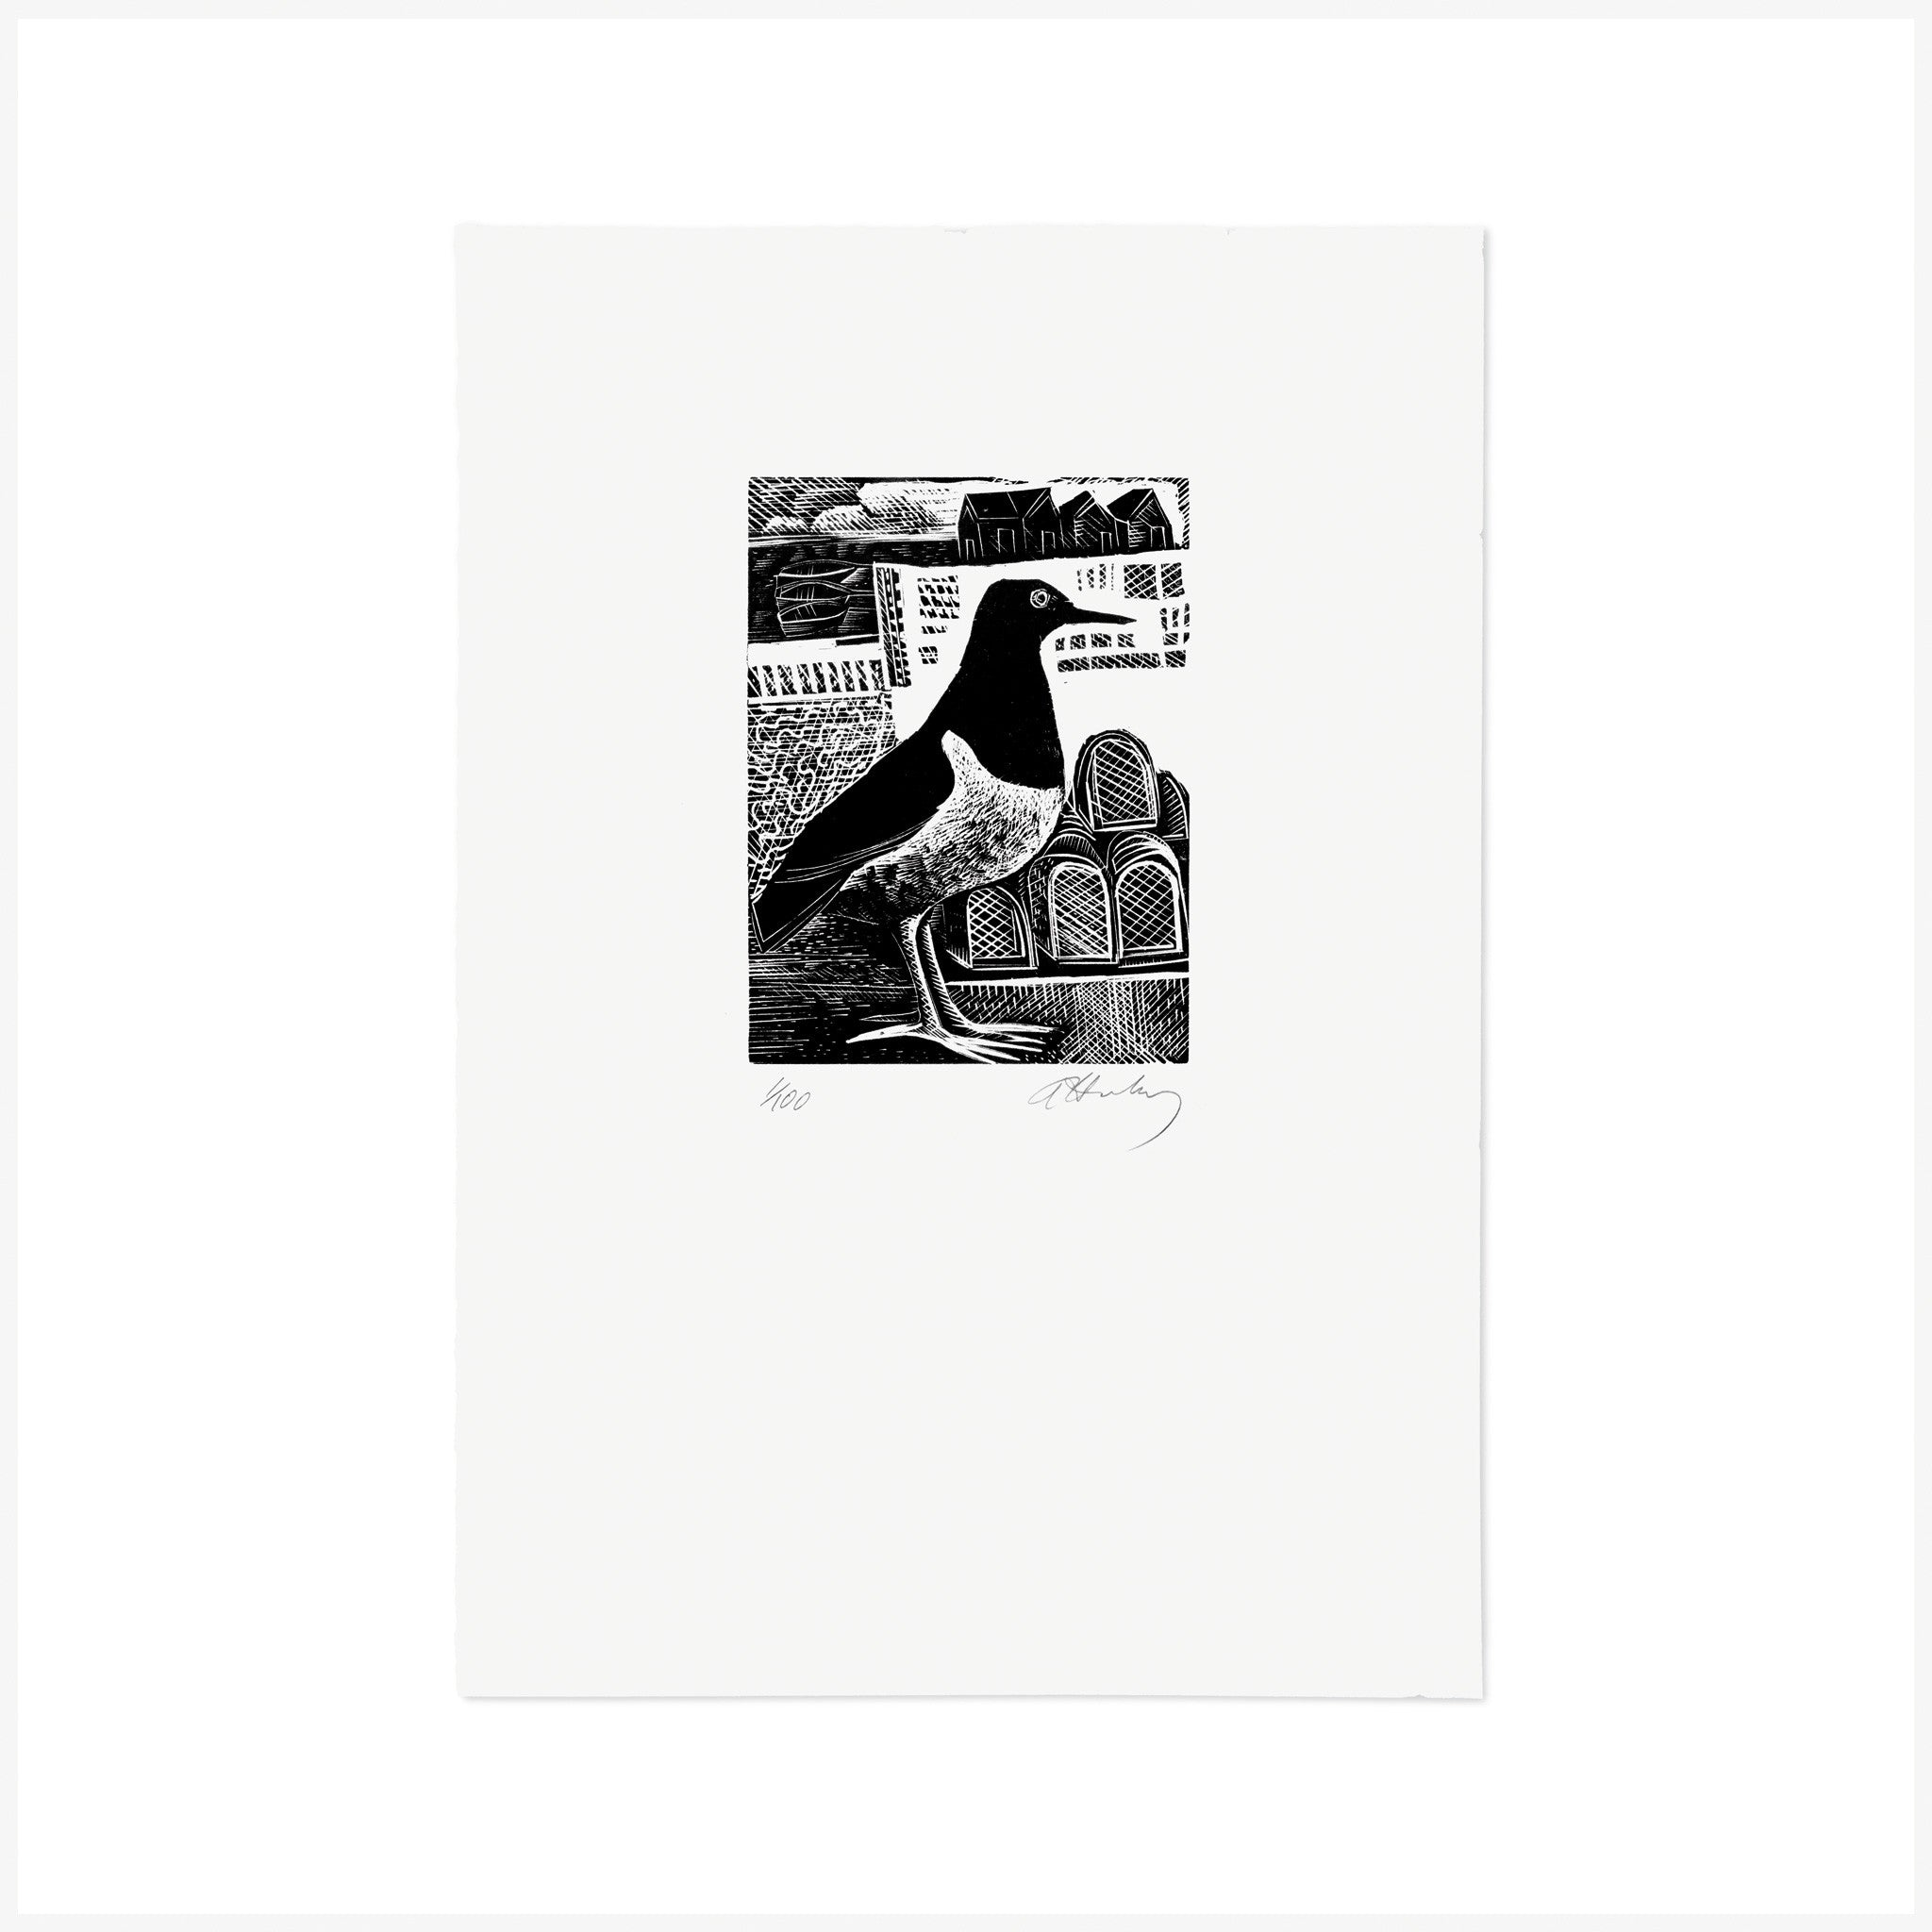 O is for oystercatchers  - Wood Engraving - Angela Harding